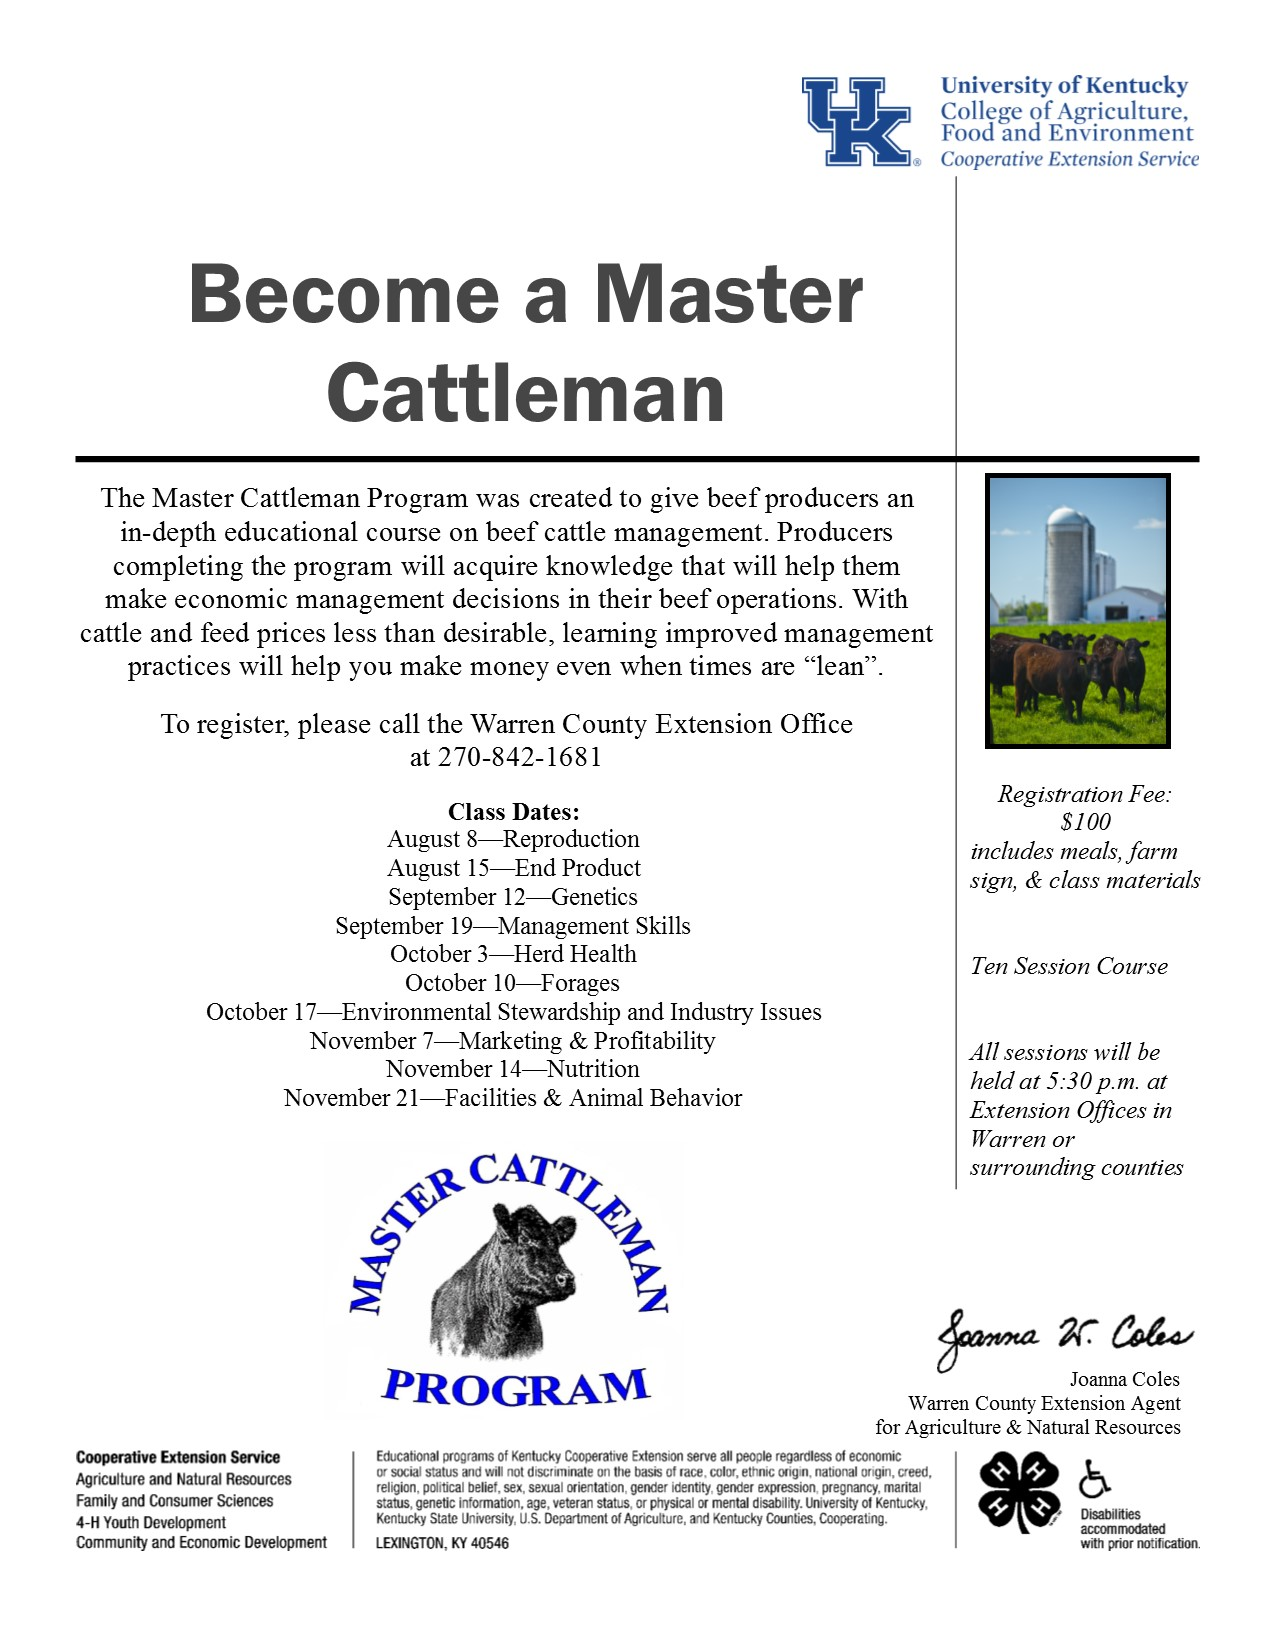 Become a Master Cattlemen! | Warren County Agriculture